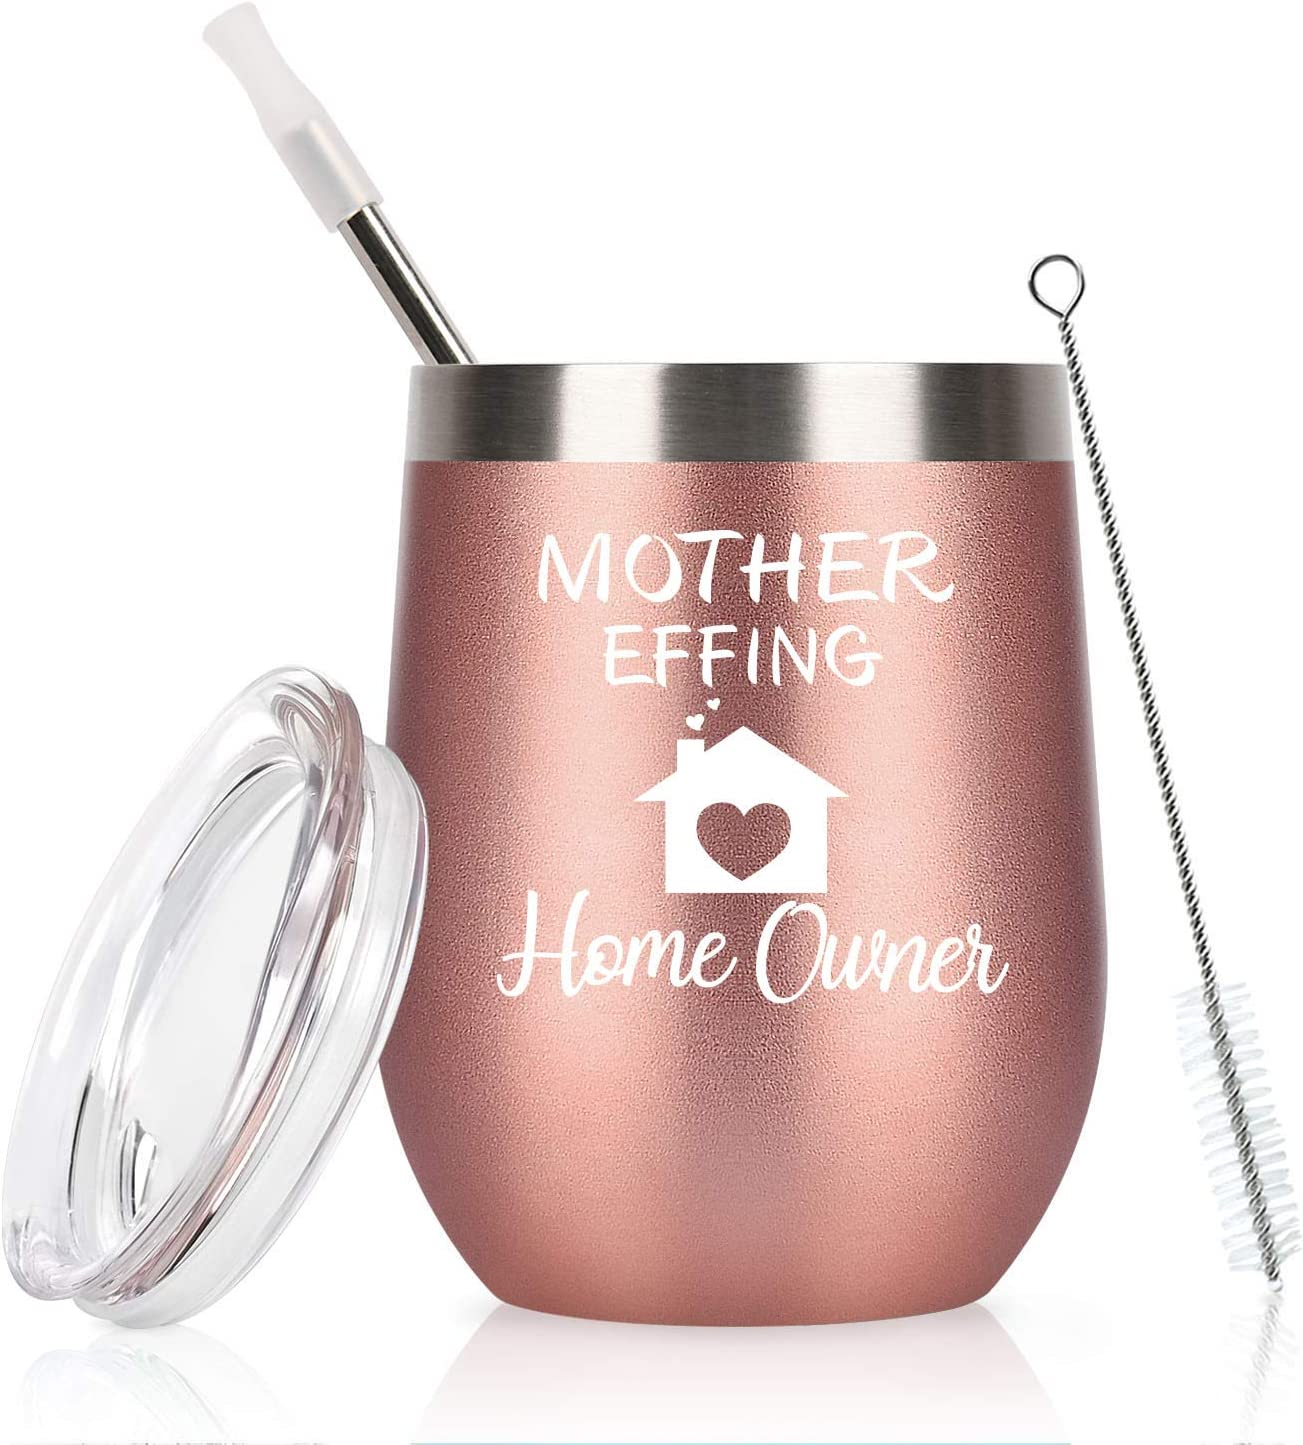 Gingprous Housewarming Gifts Unique Gifts For New Home Owner, Homeowner Funny First Time Home Owner Gift Ideas,12 Oz Stainless Steel Insulated Wine Tumbler with Lid and Straw, Rose Gold